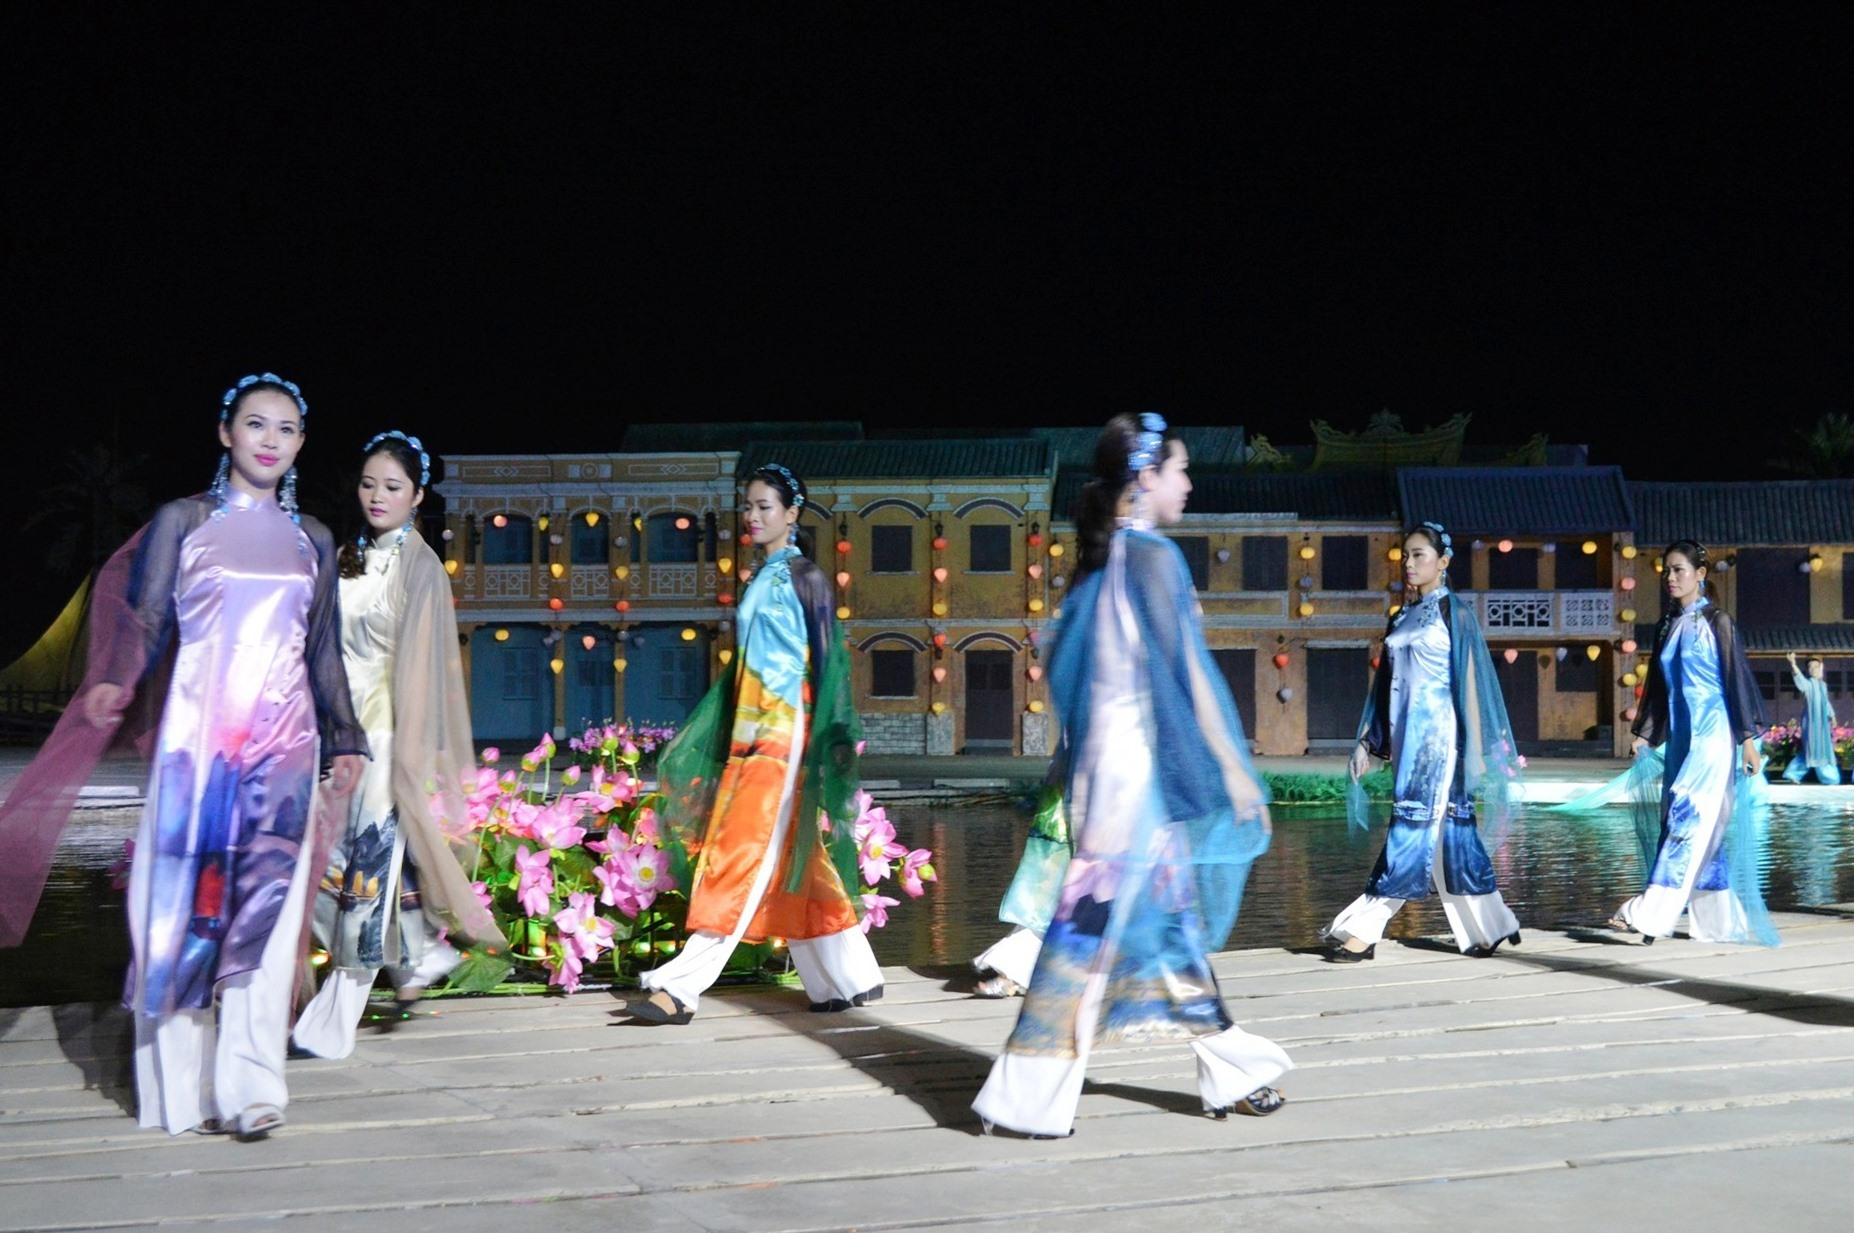 At the event, 17 'Ao Dai' collections attached to 17 Vietnam's tourist attractions including Thang Long Imperial Citadel, Ha Long Bay, Trang An Landscape Complex, My Son Sanctuary, Hoi An's Japanese Bridge, Phong Nha- Ke Bang National Park and Cultural space of Gongs in Central Highlands featured the stories of Ao Dai (a traditional Vietnamese costume) from the past to present into future.